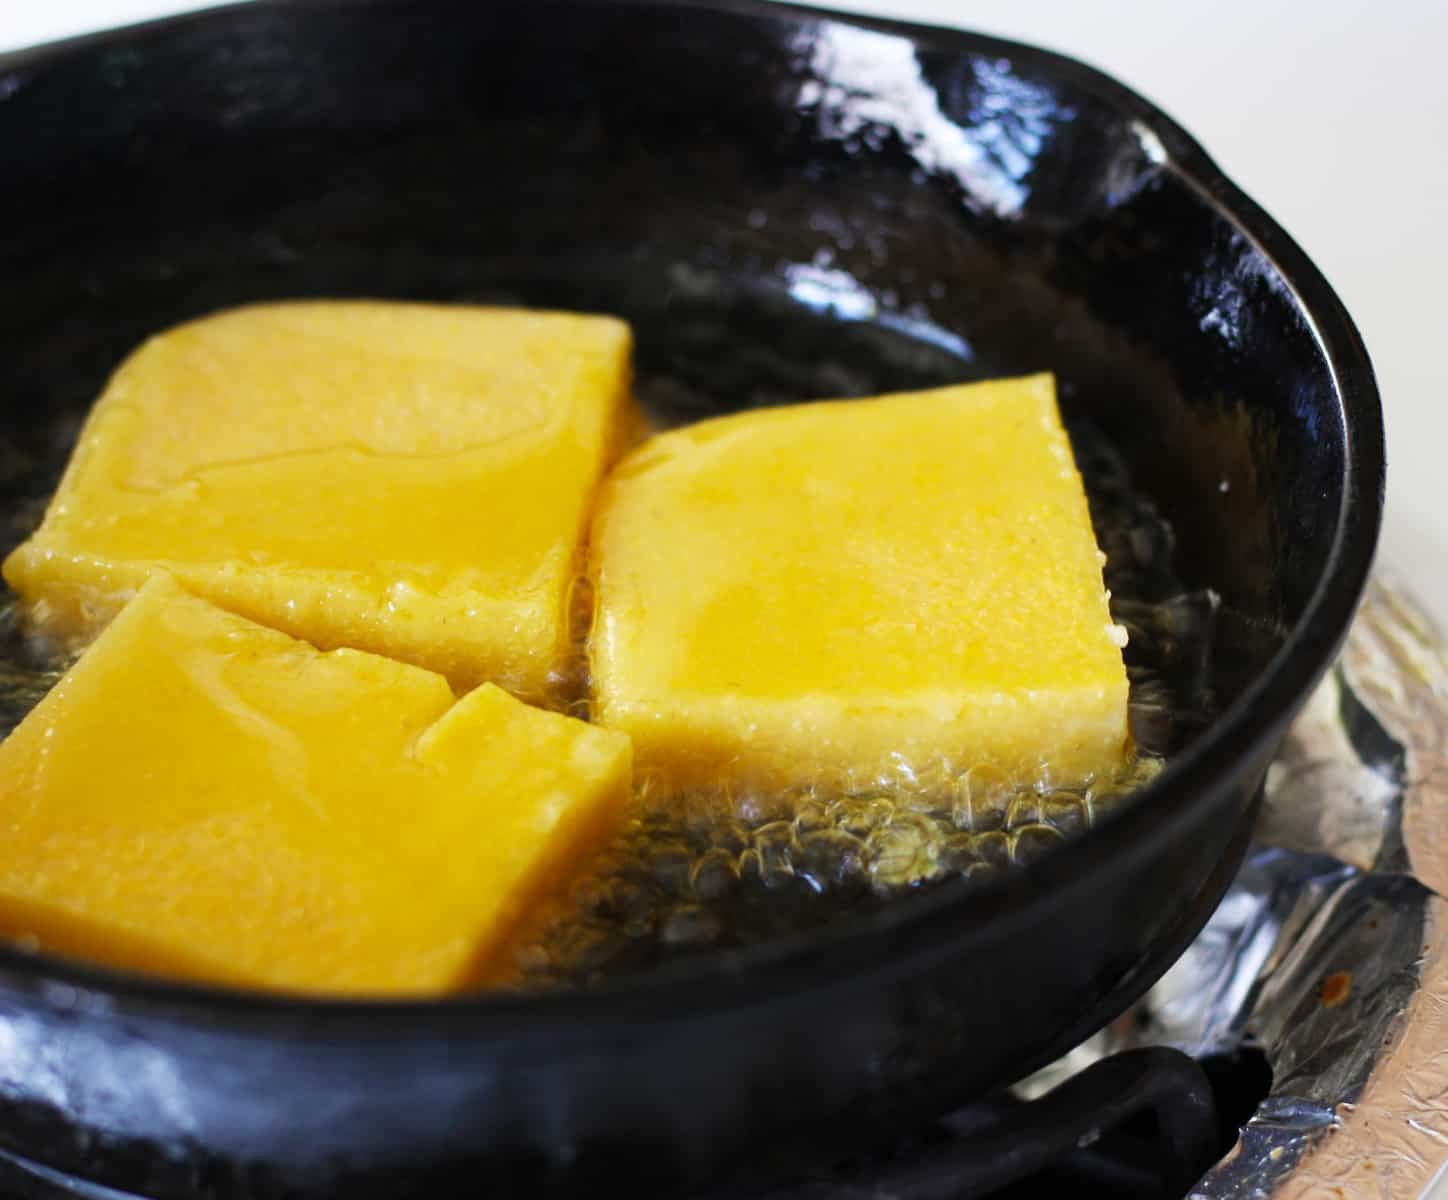 Polenta frying in a pan.